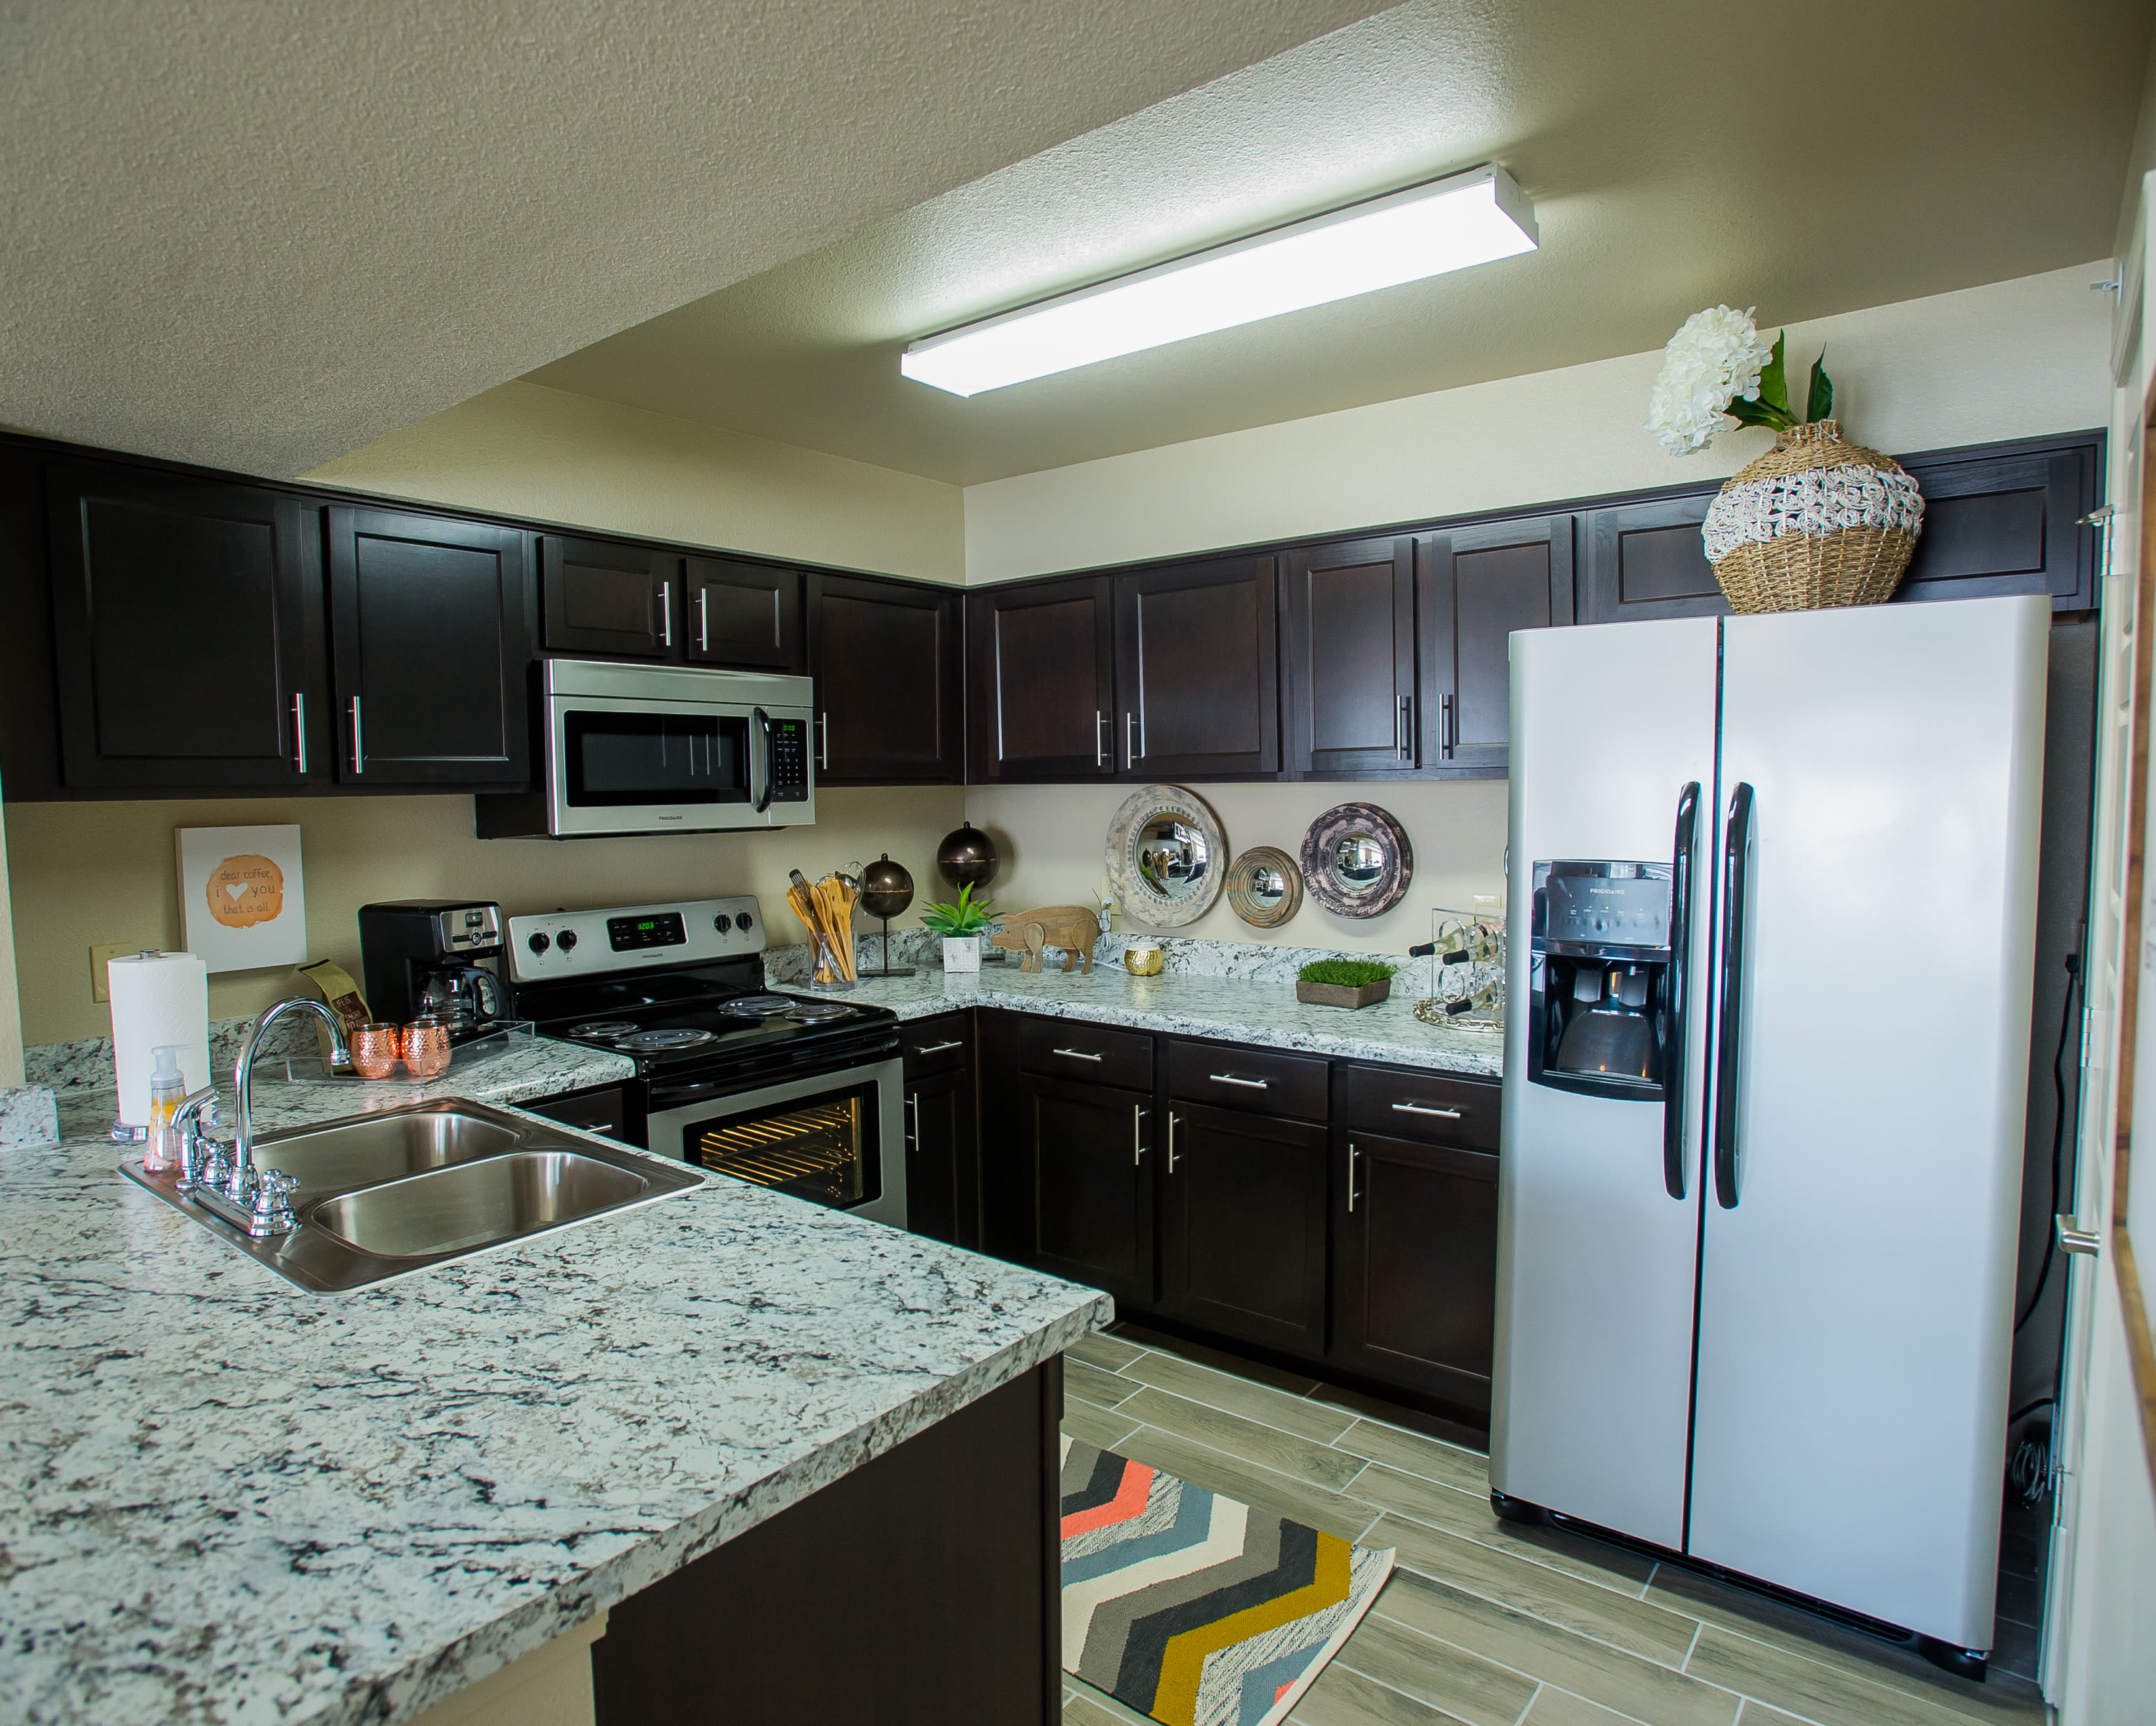 Modern kitchen at Portico at Friars Creek Apartments in Temple, Texas